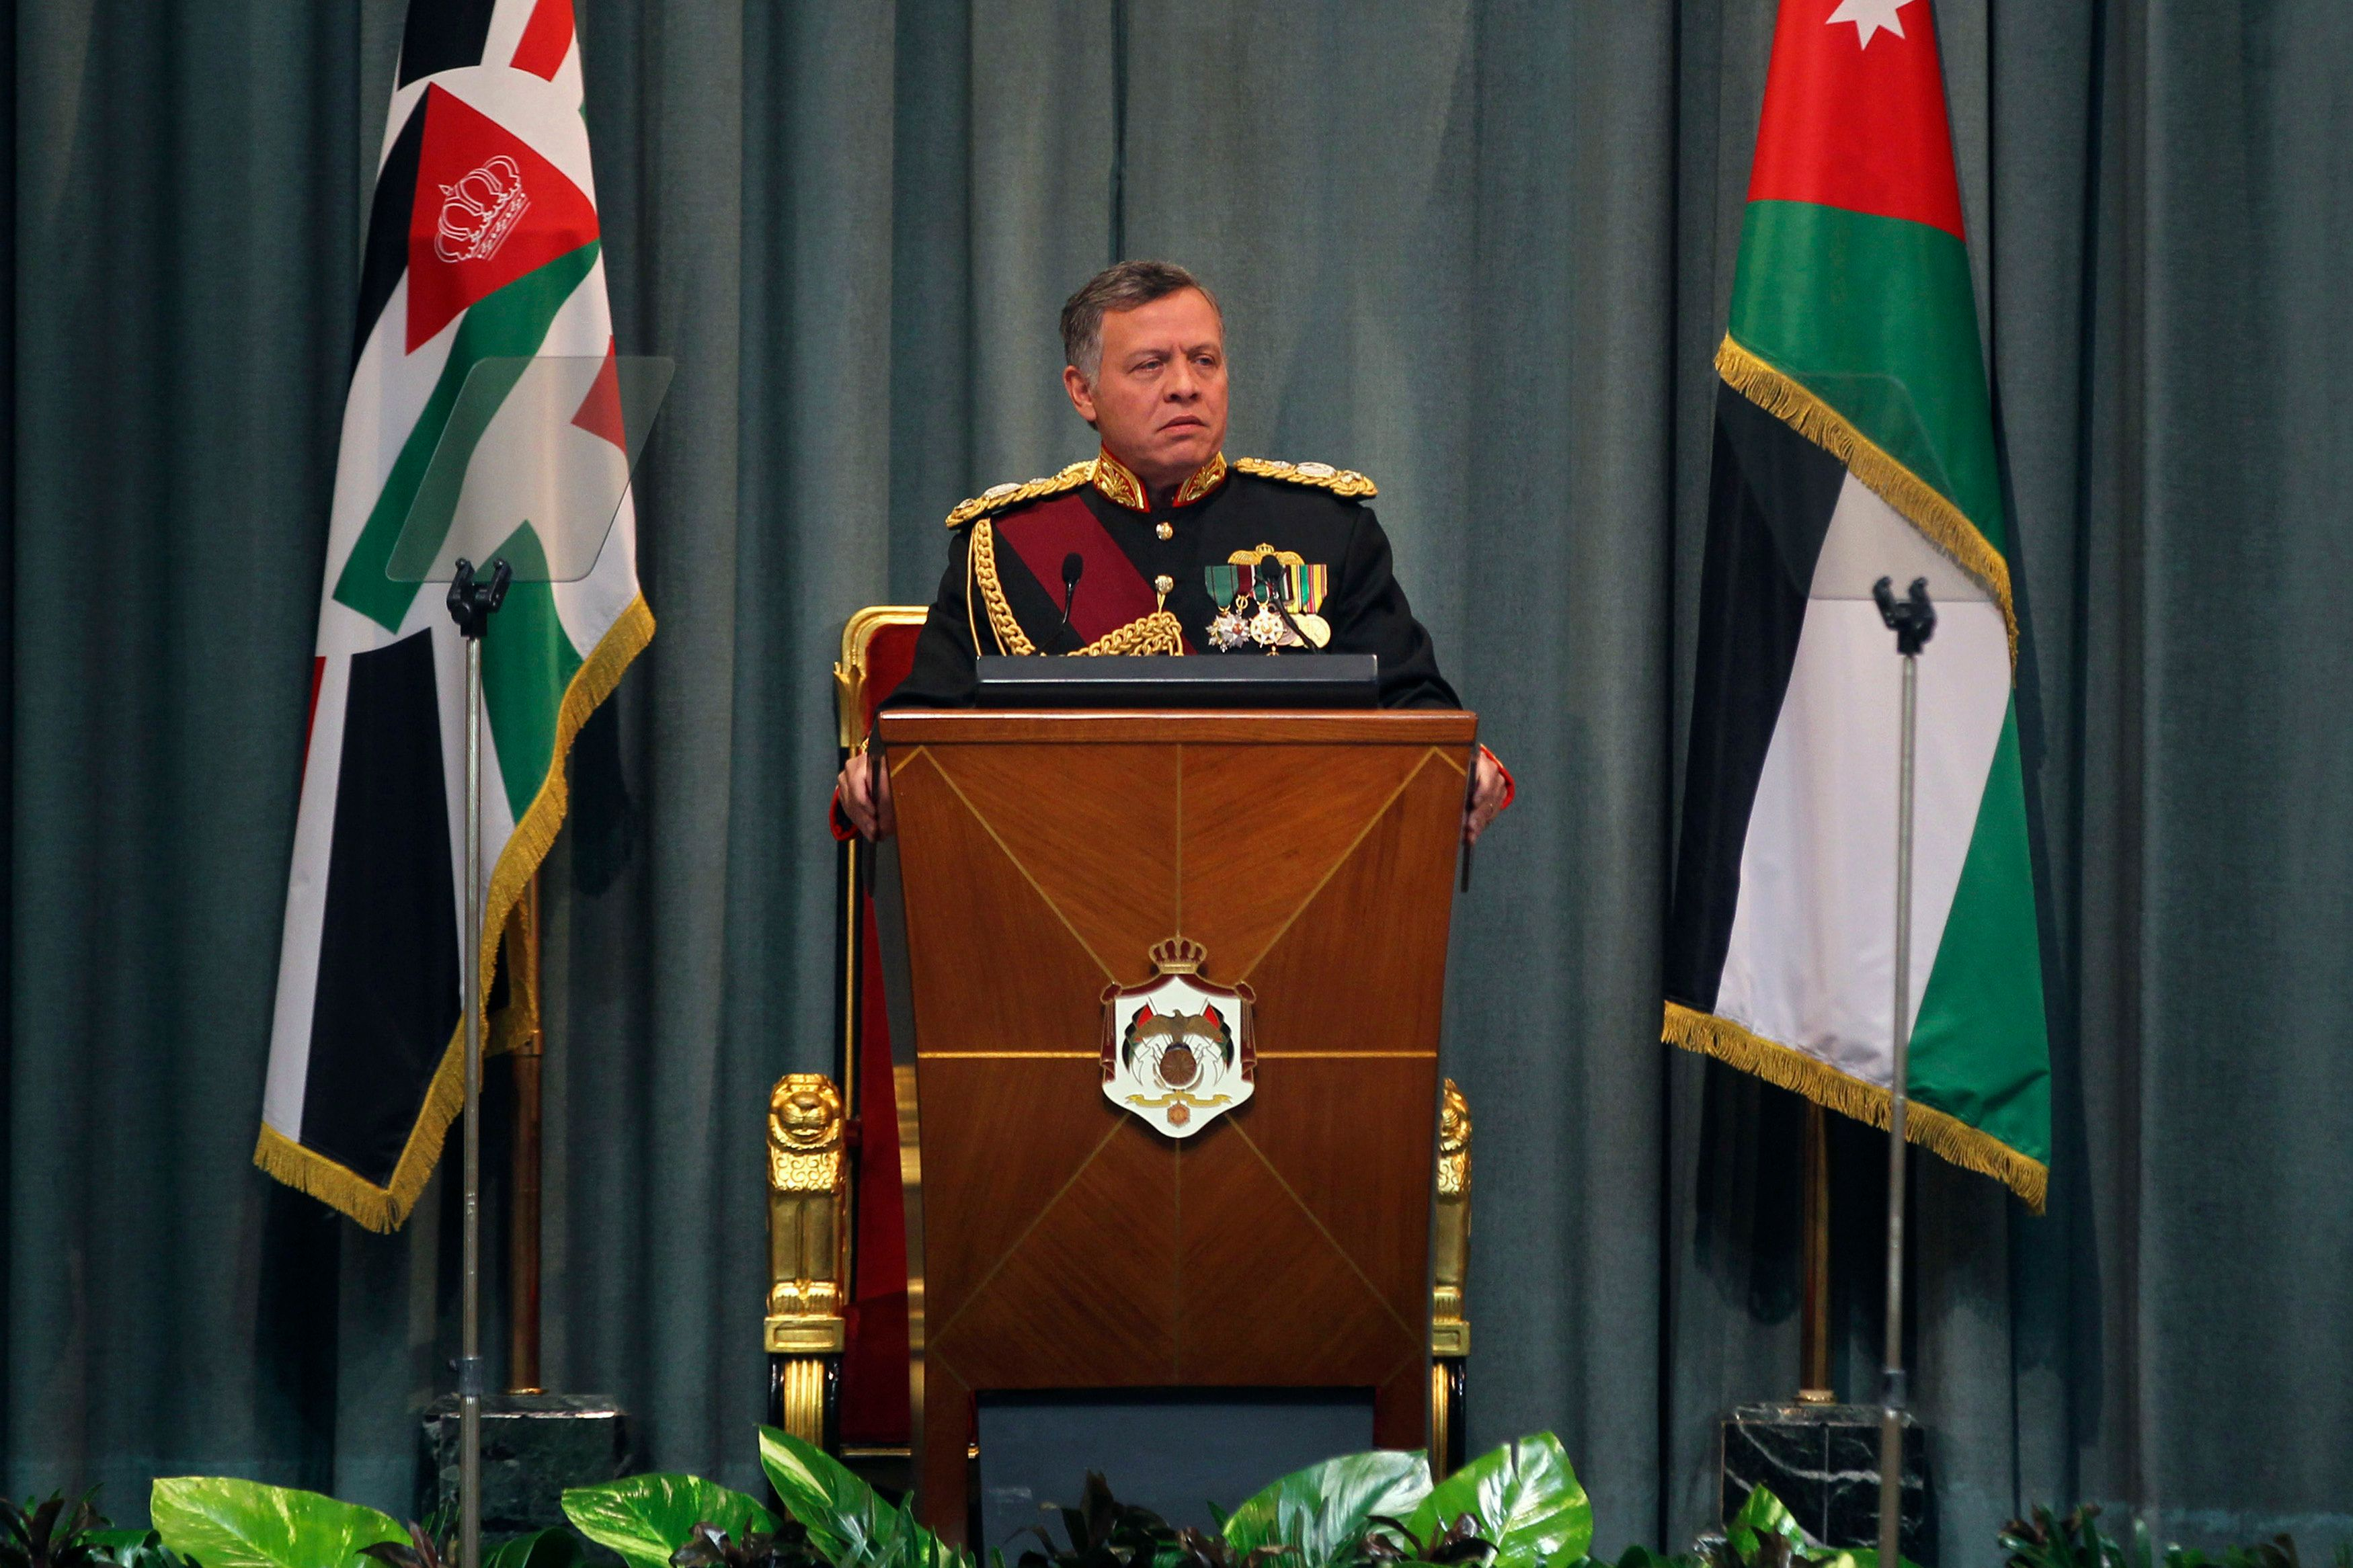 Jordan's Parliament and King Abdullah II are expected to approve the cabinet's recommendation to repeal Article 308.